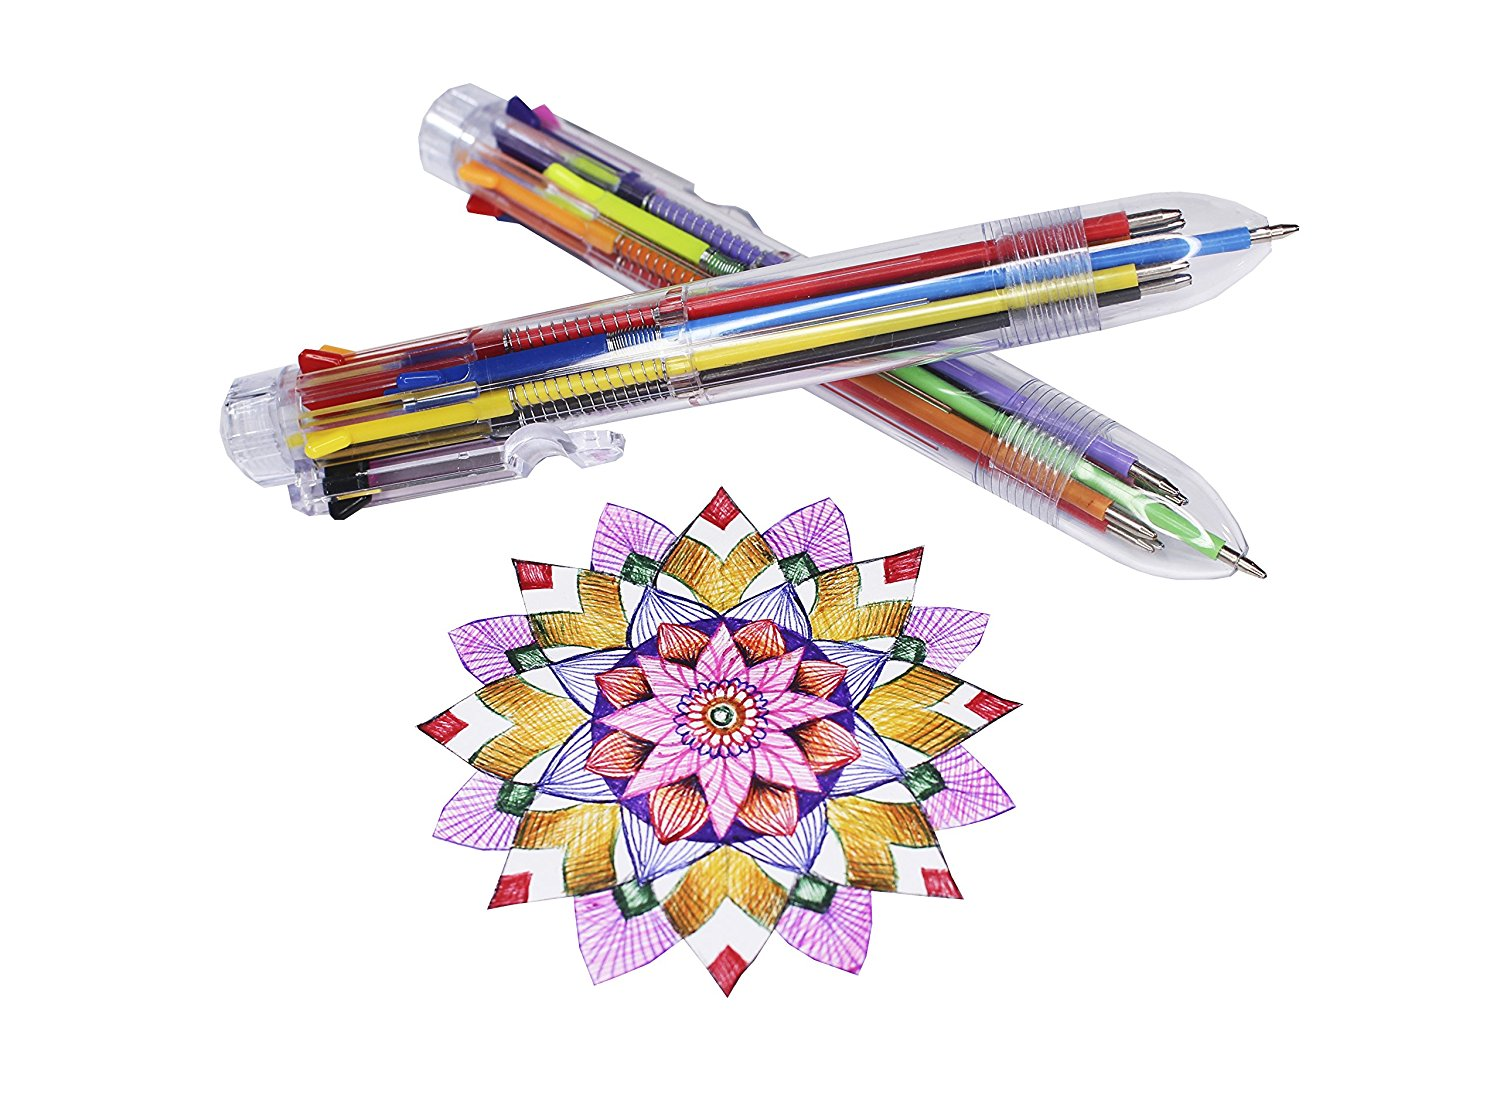 Multicolor Pens: 10 Pack of Retractable 8-in-1 Ballpoint Pens & E-book - 0.5mm Tip